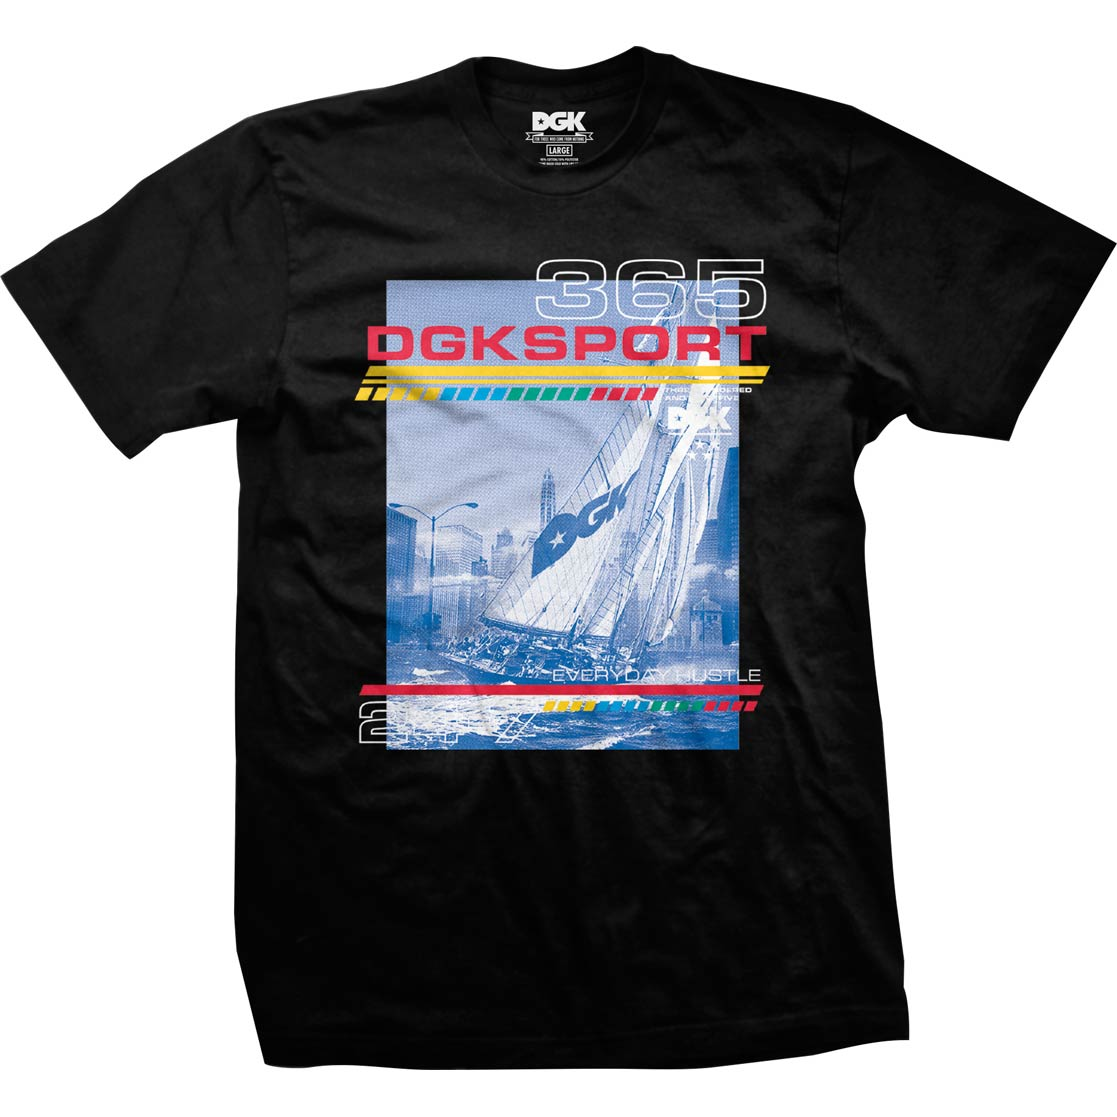 DGK Seascape T-Shirt Black